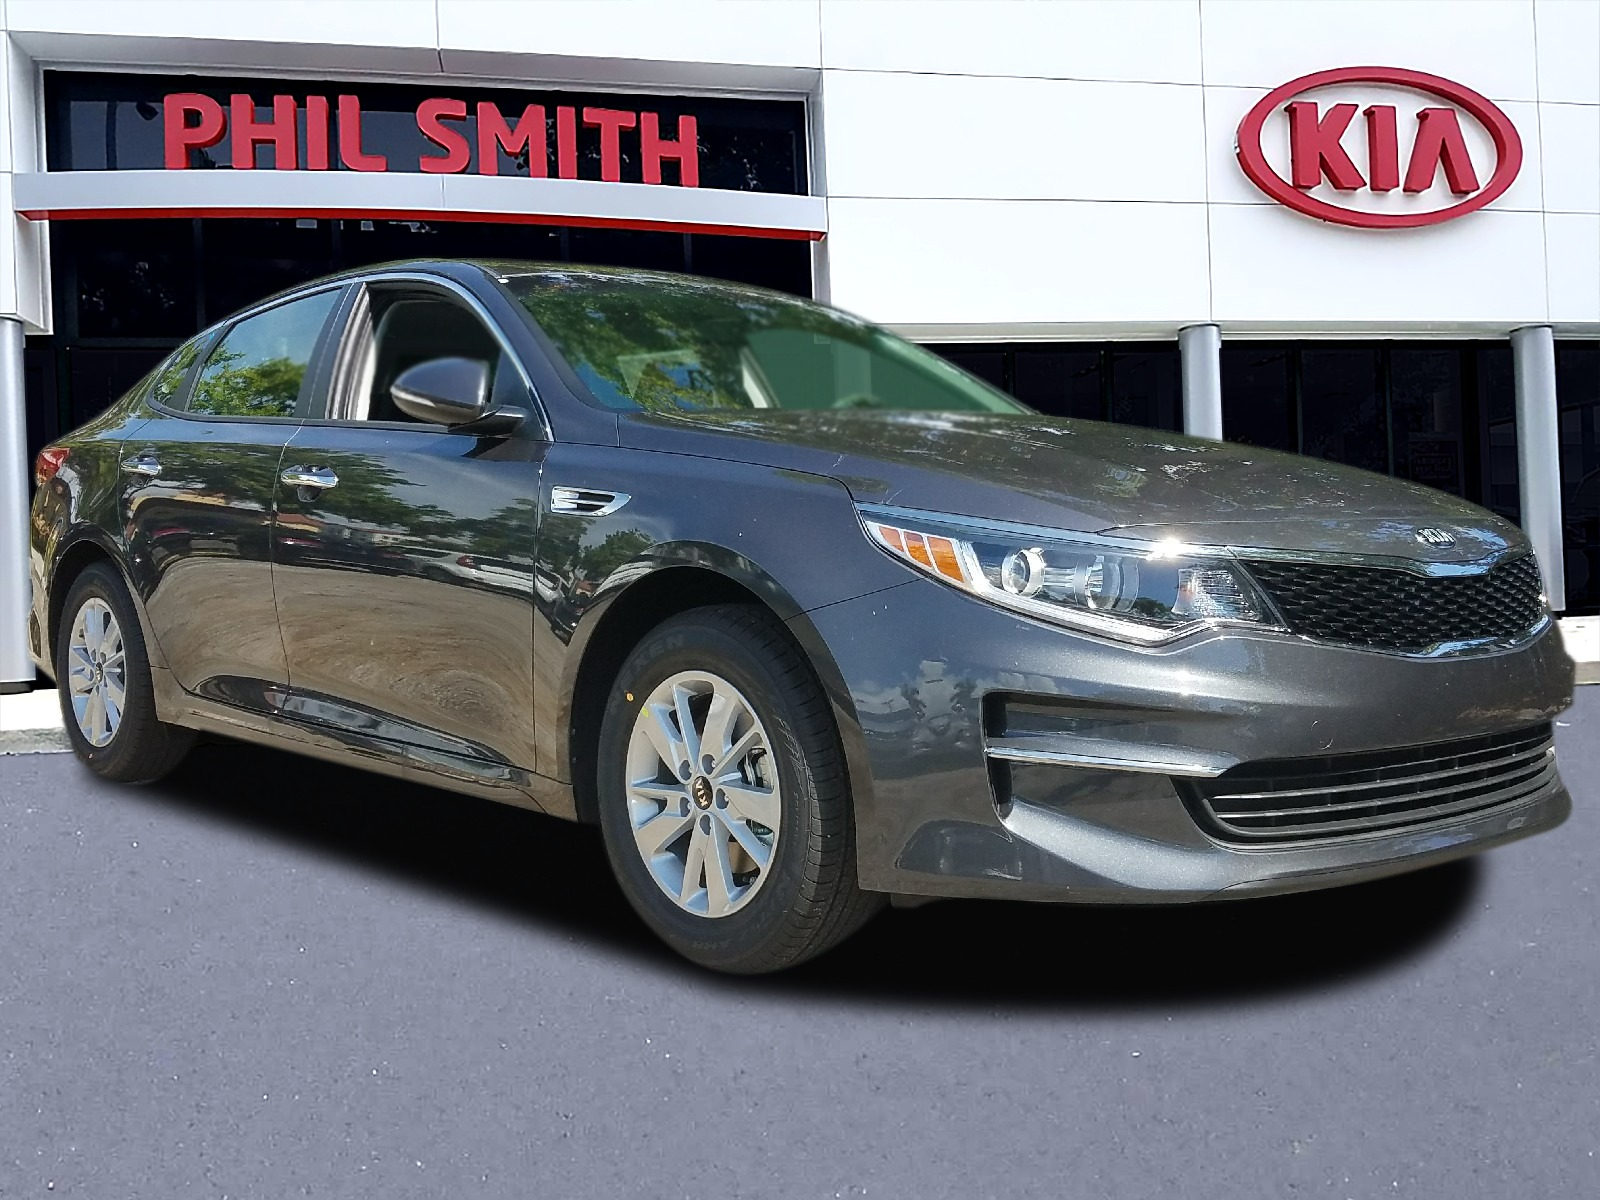 htm the under pikeville bruce optima in s new performance kia ky walters